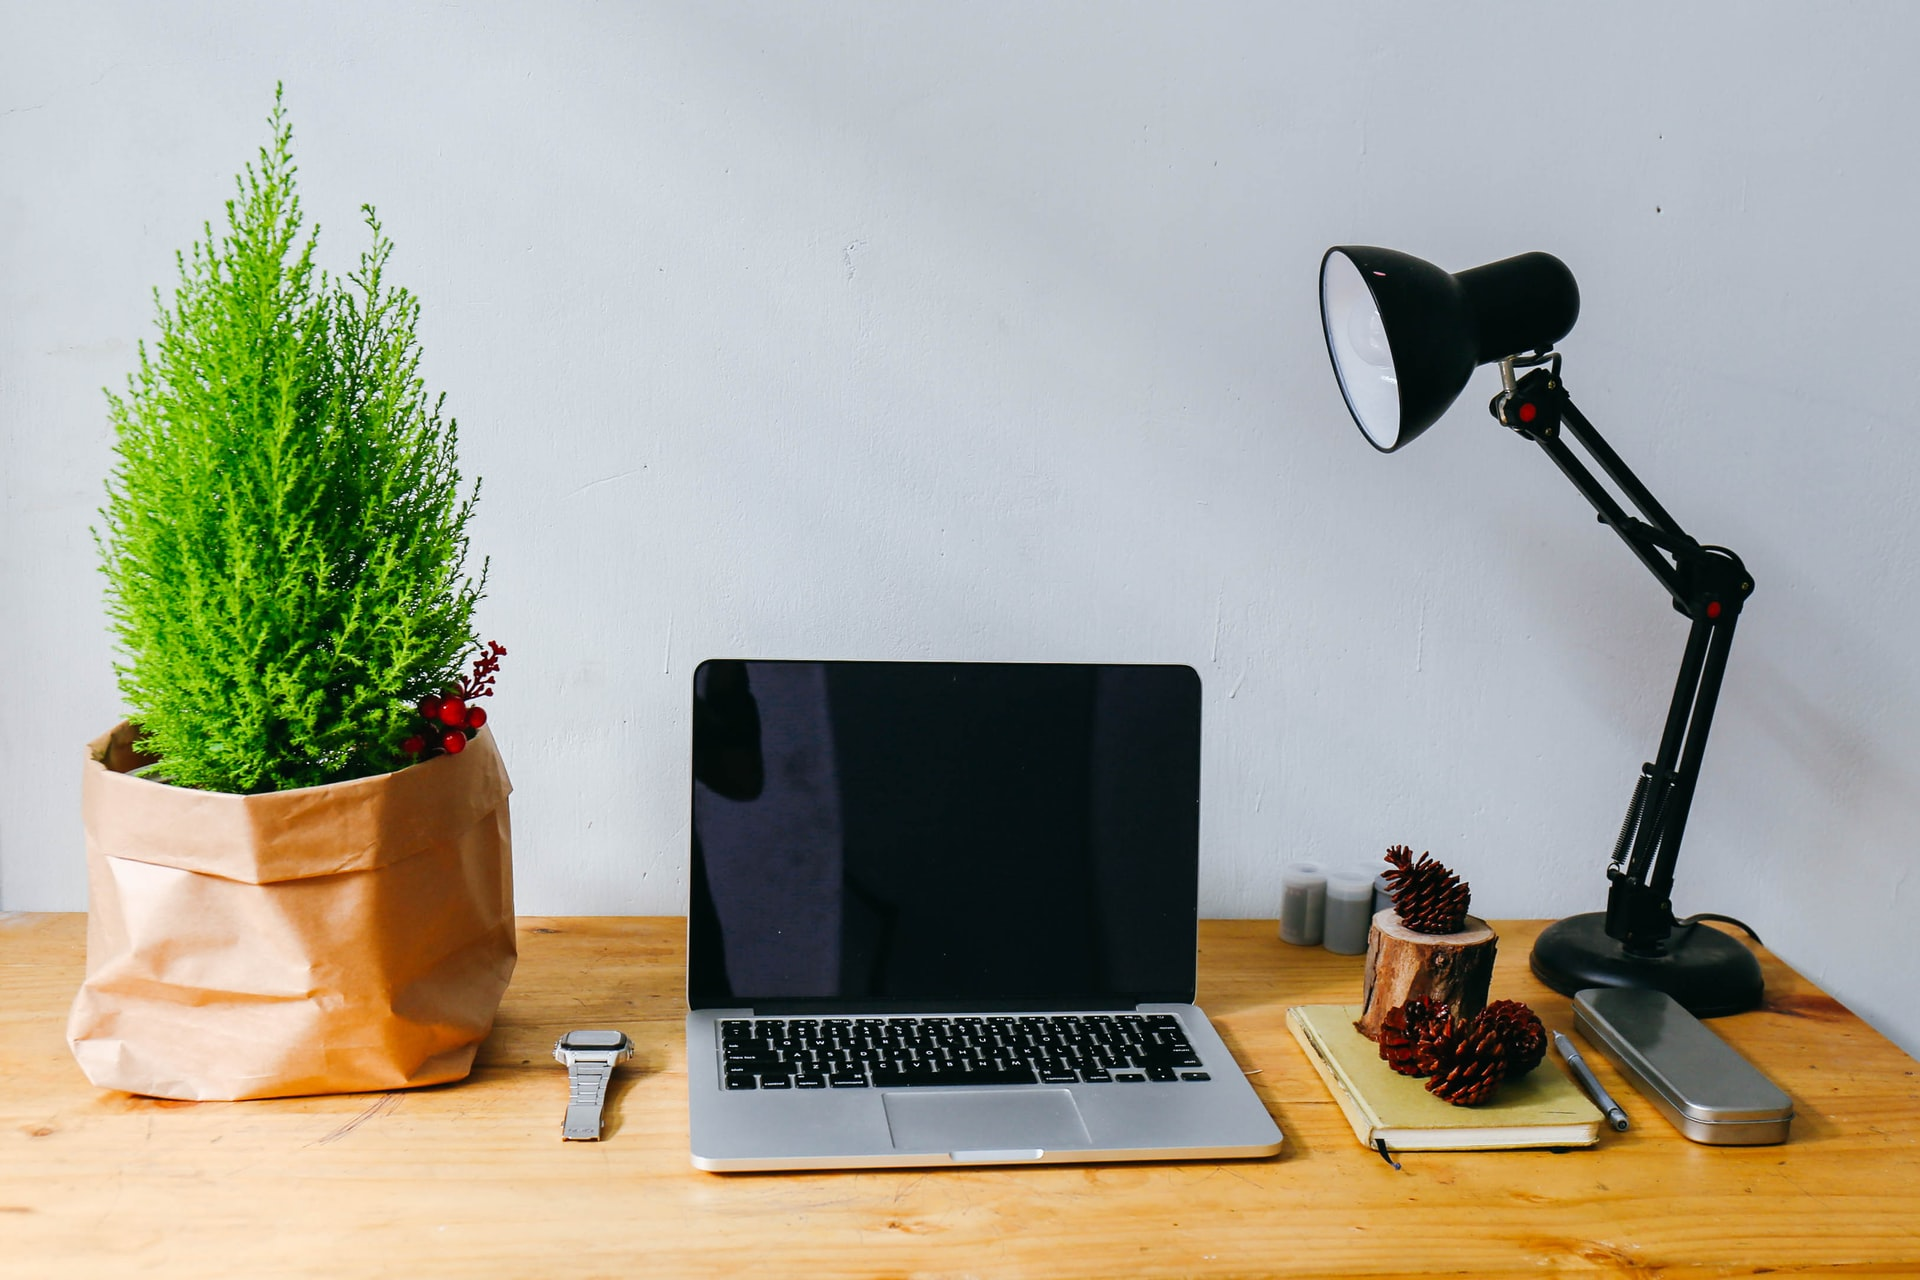 working from home desk, including plant, laptop, desk lamp and stationery